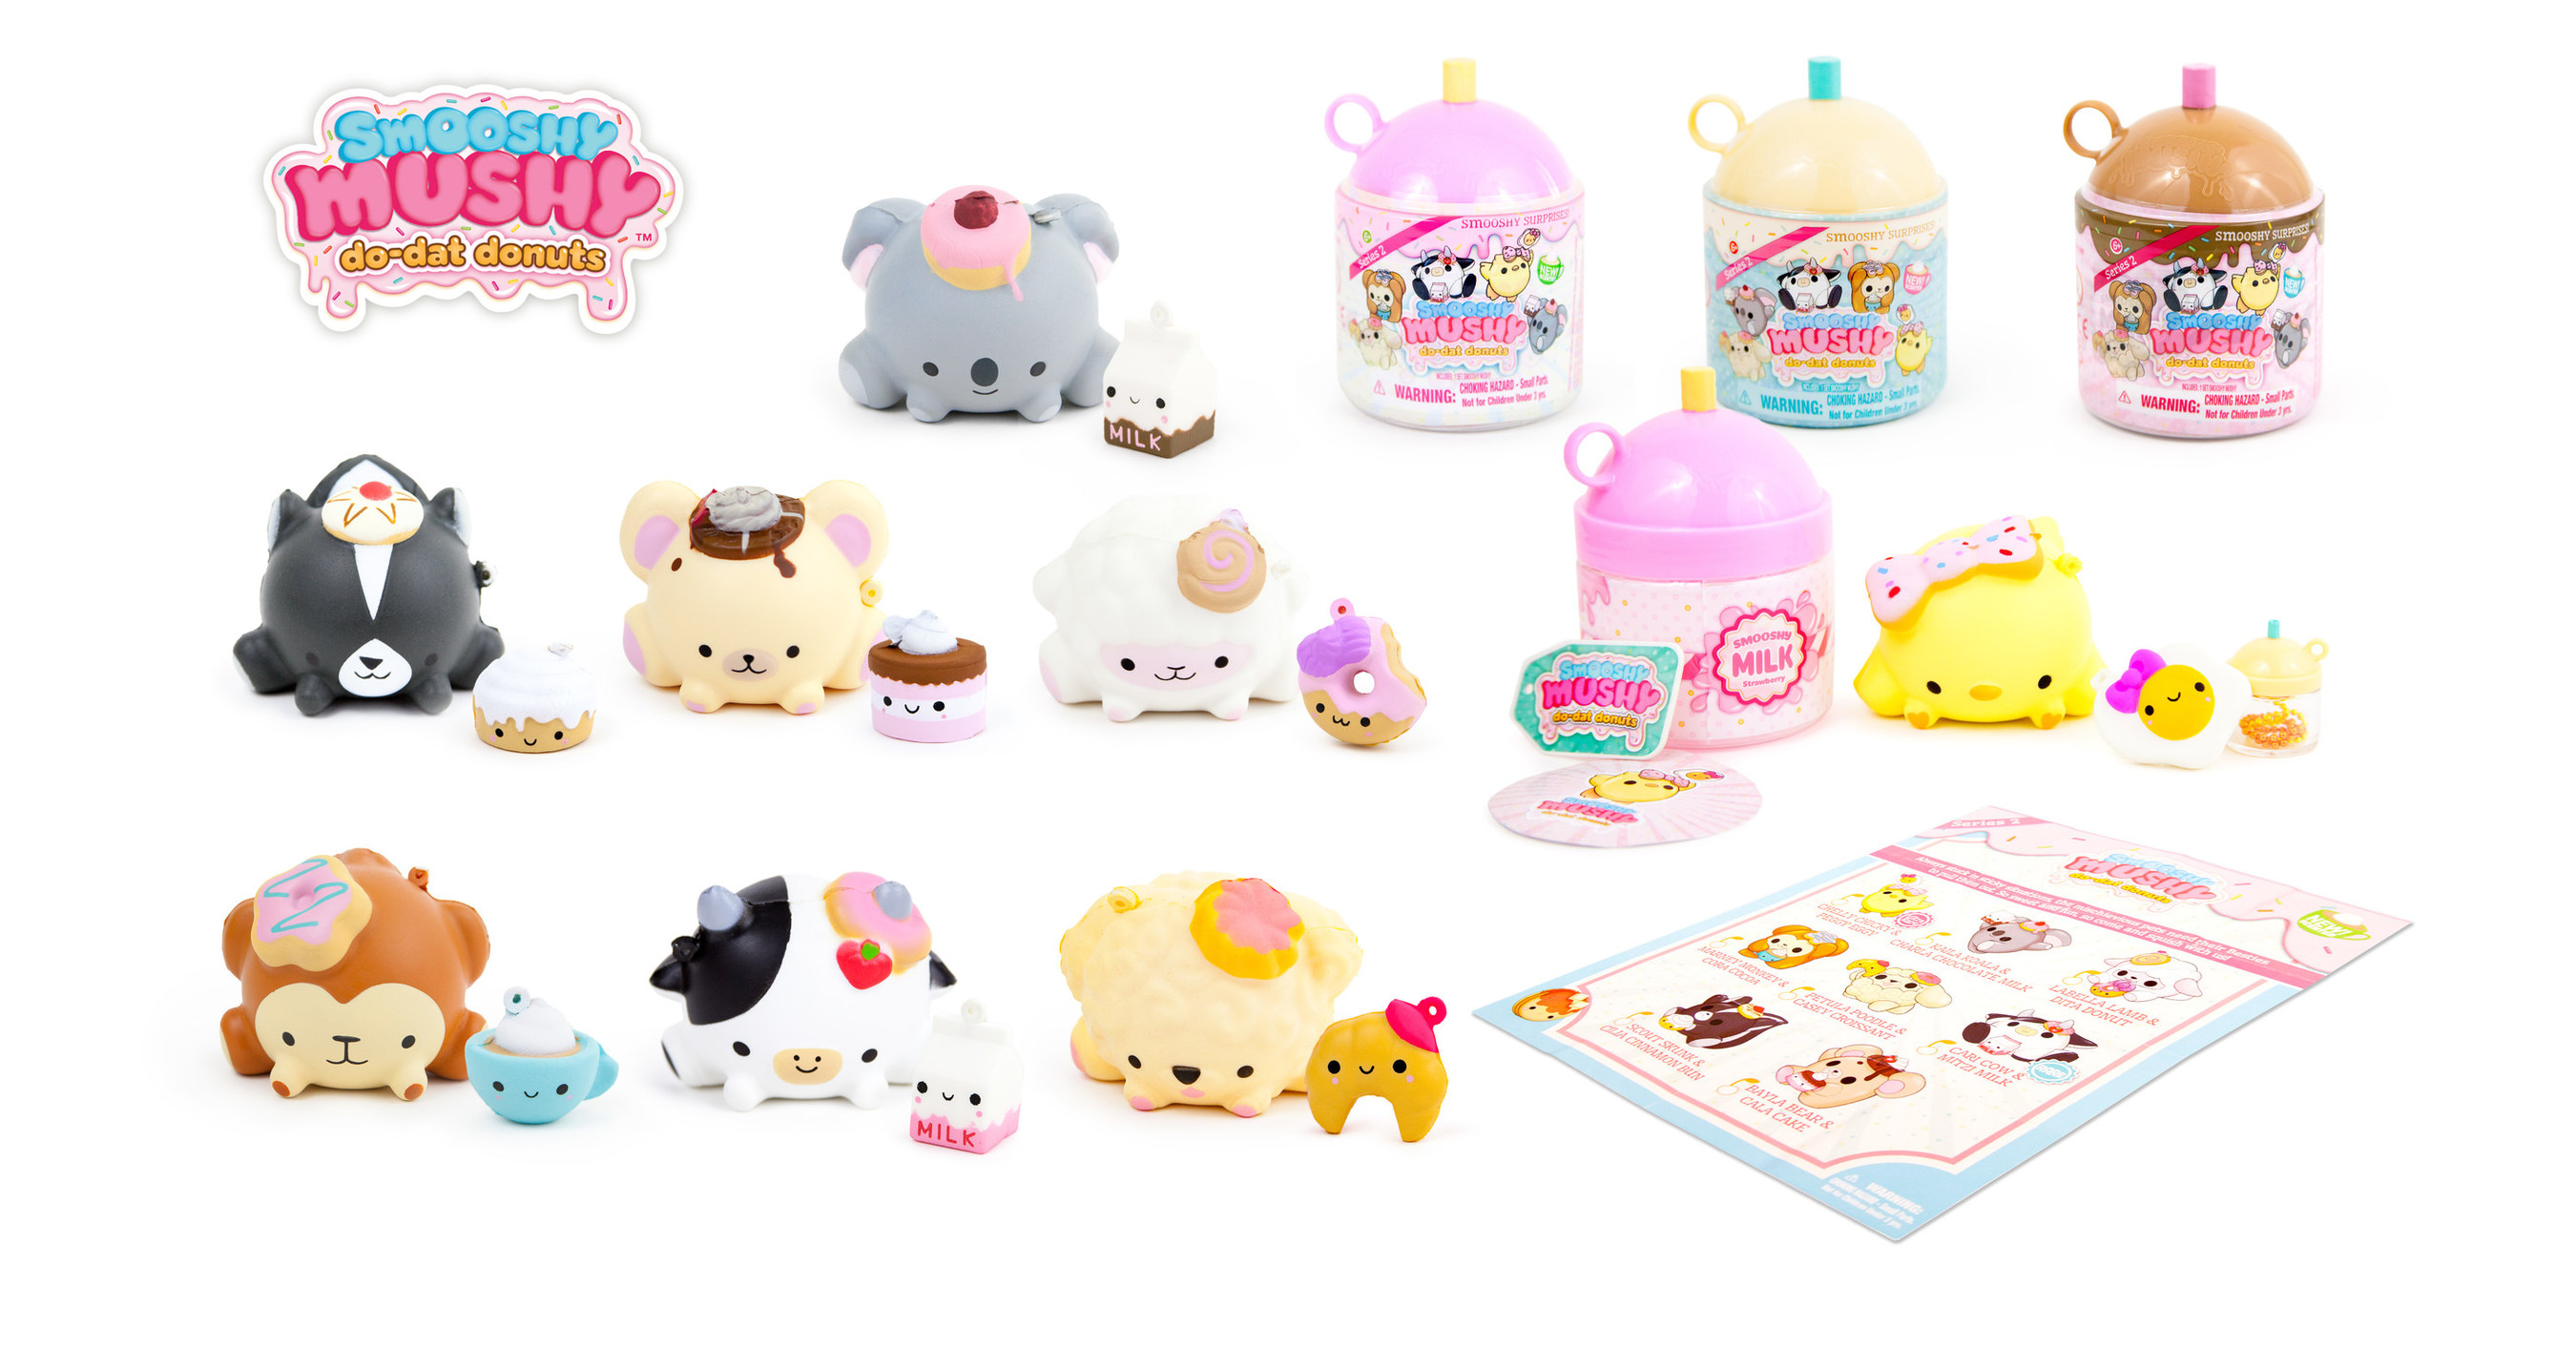 call toys r us with Smooshy Mushy Brand Arrives At Toys R Us Sold Out Collectible Line Expands Global Distribution In 2018 300593033 on Contact in addition Adaportableswing besides 27387753 also Product detail further Watch.